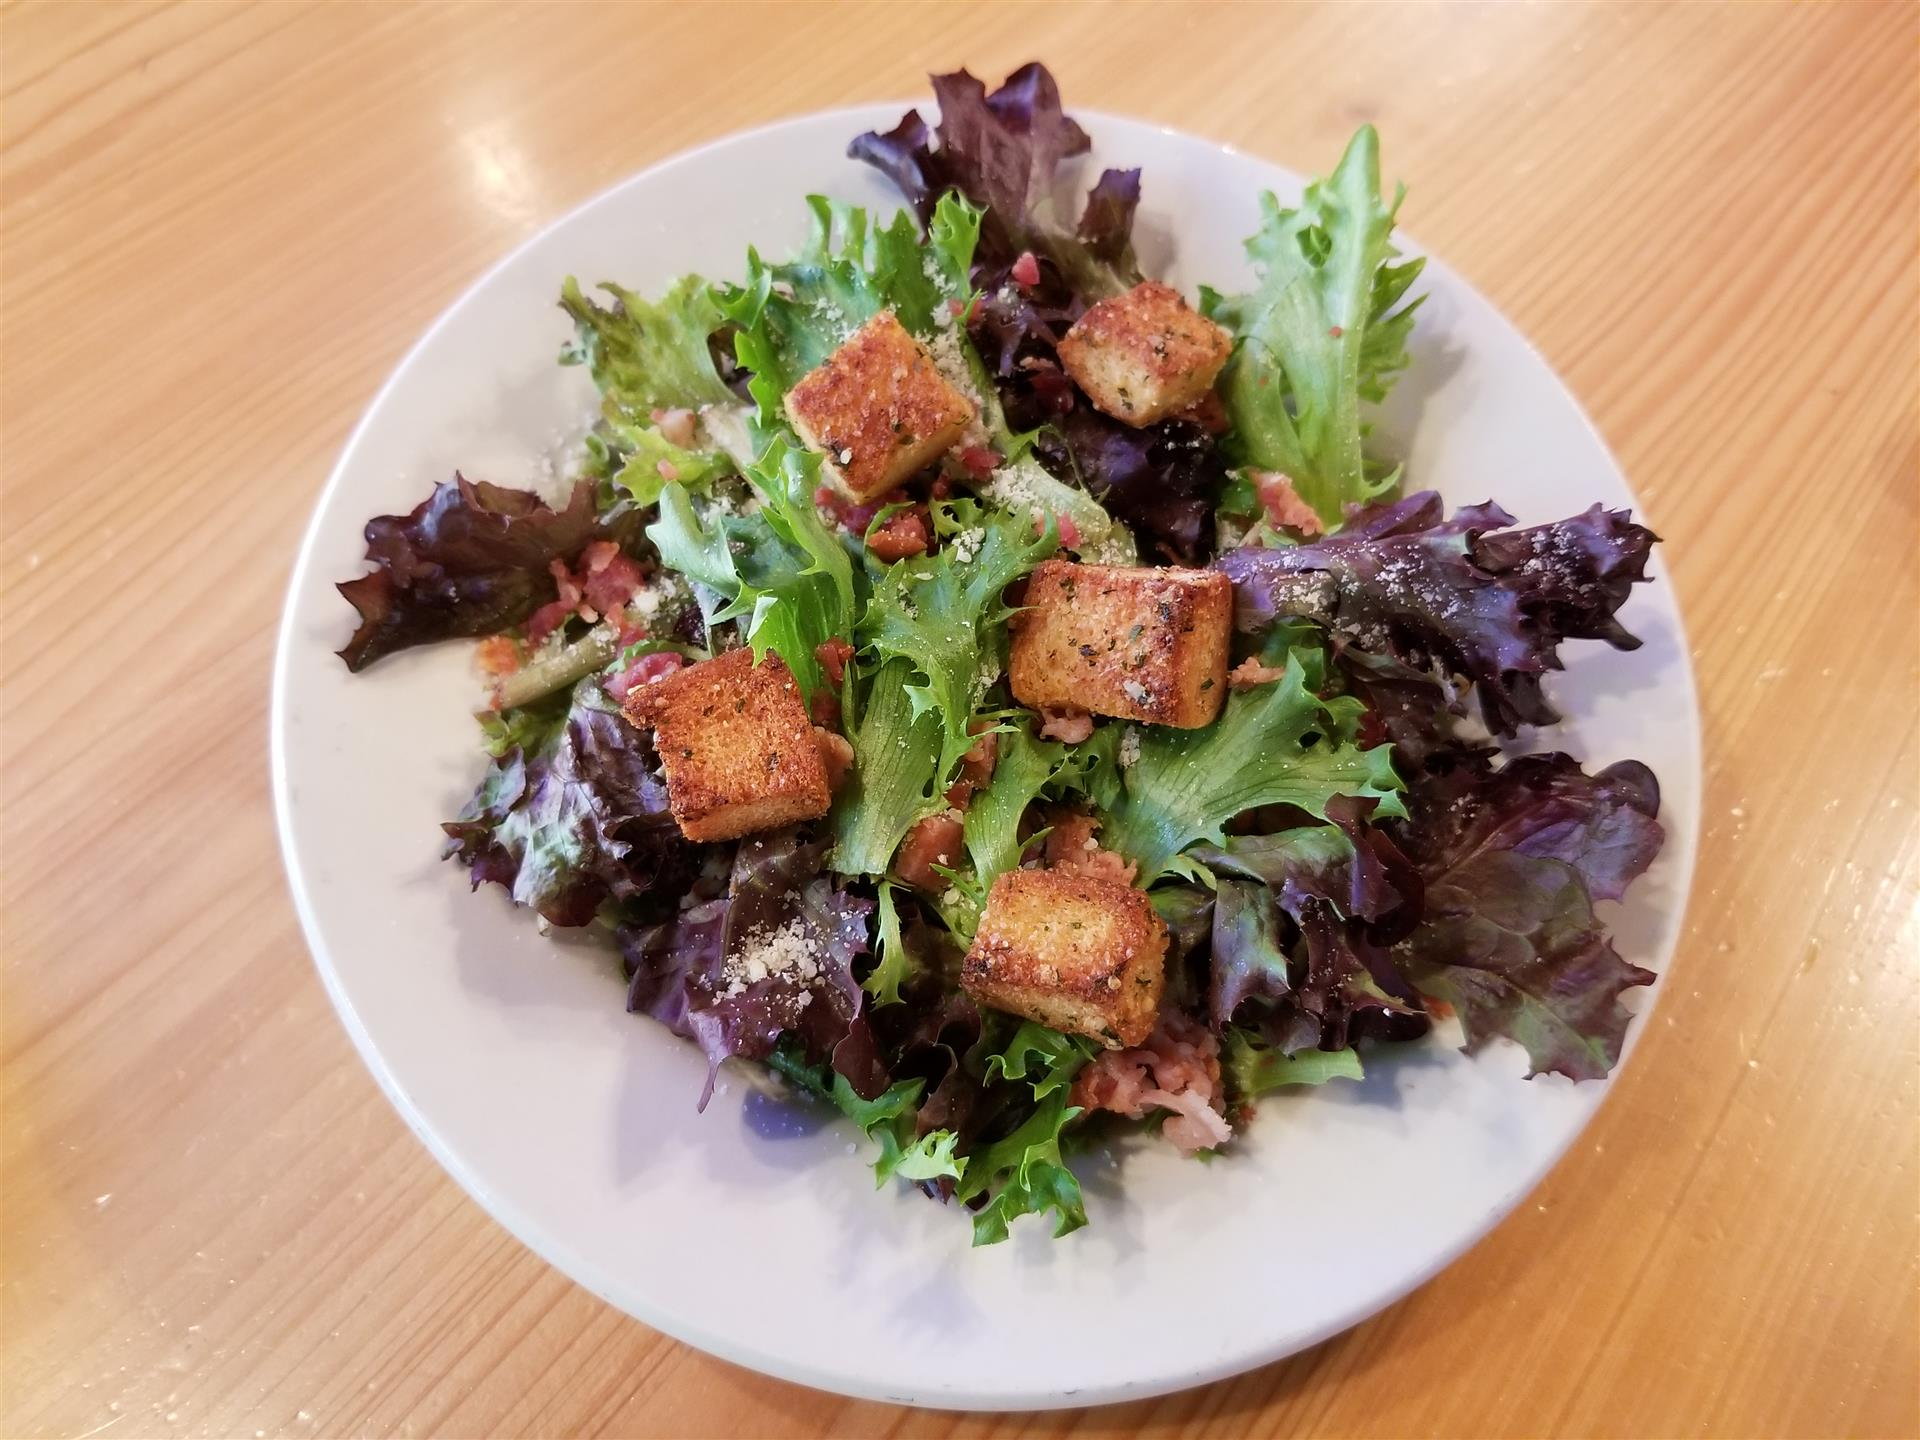 rustic Caesar salad is A unique blend of European small leaf lettuces, with the traditional toppings of Parmesan Cheese, Bacon Bits, and Homemade Croutons, make this Caesar Salad truly unique!